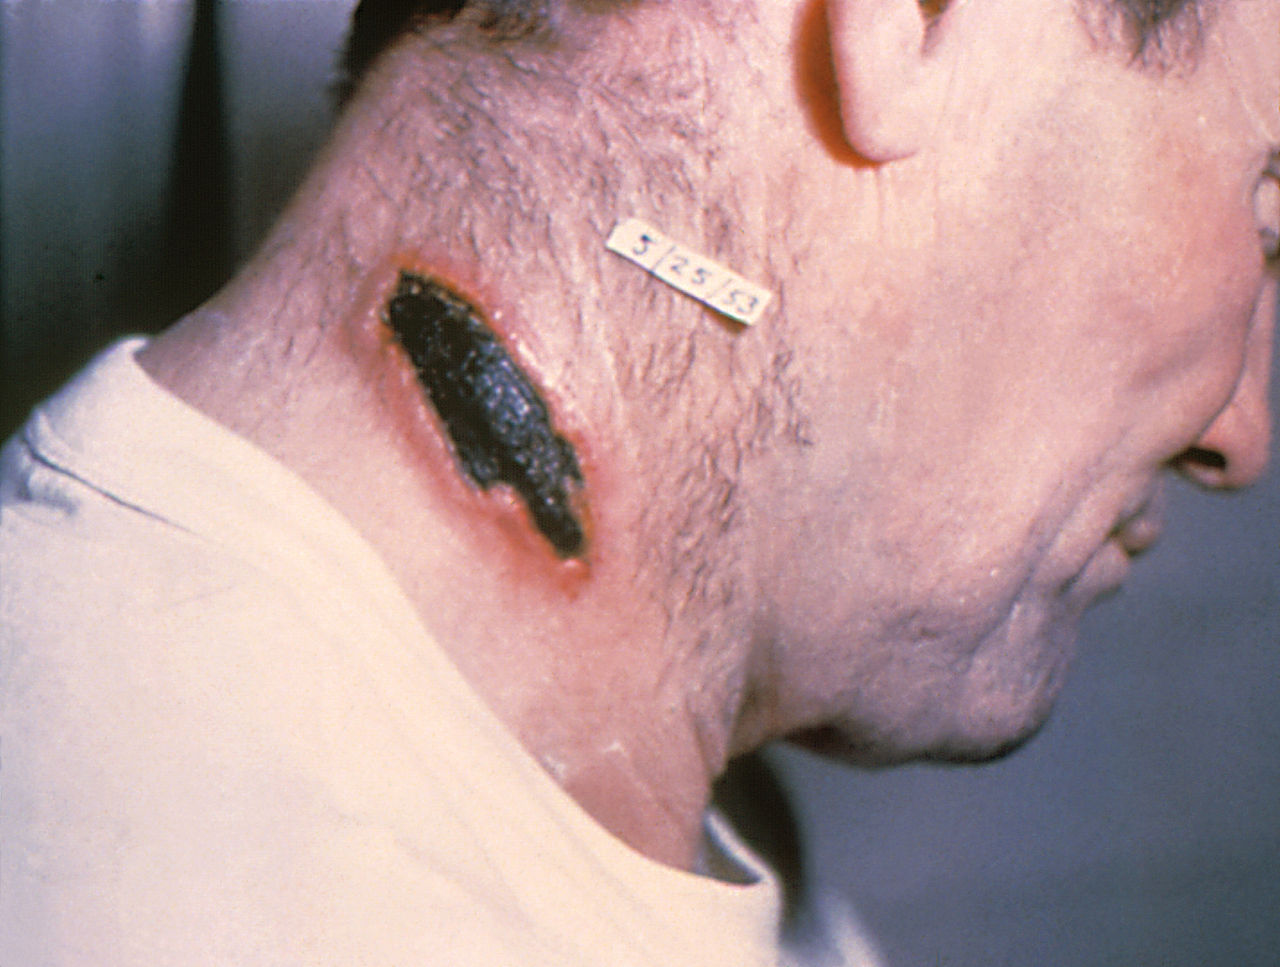 Cutaneous Anthrax lesion on the neck.